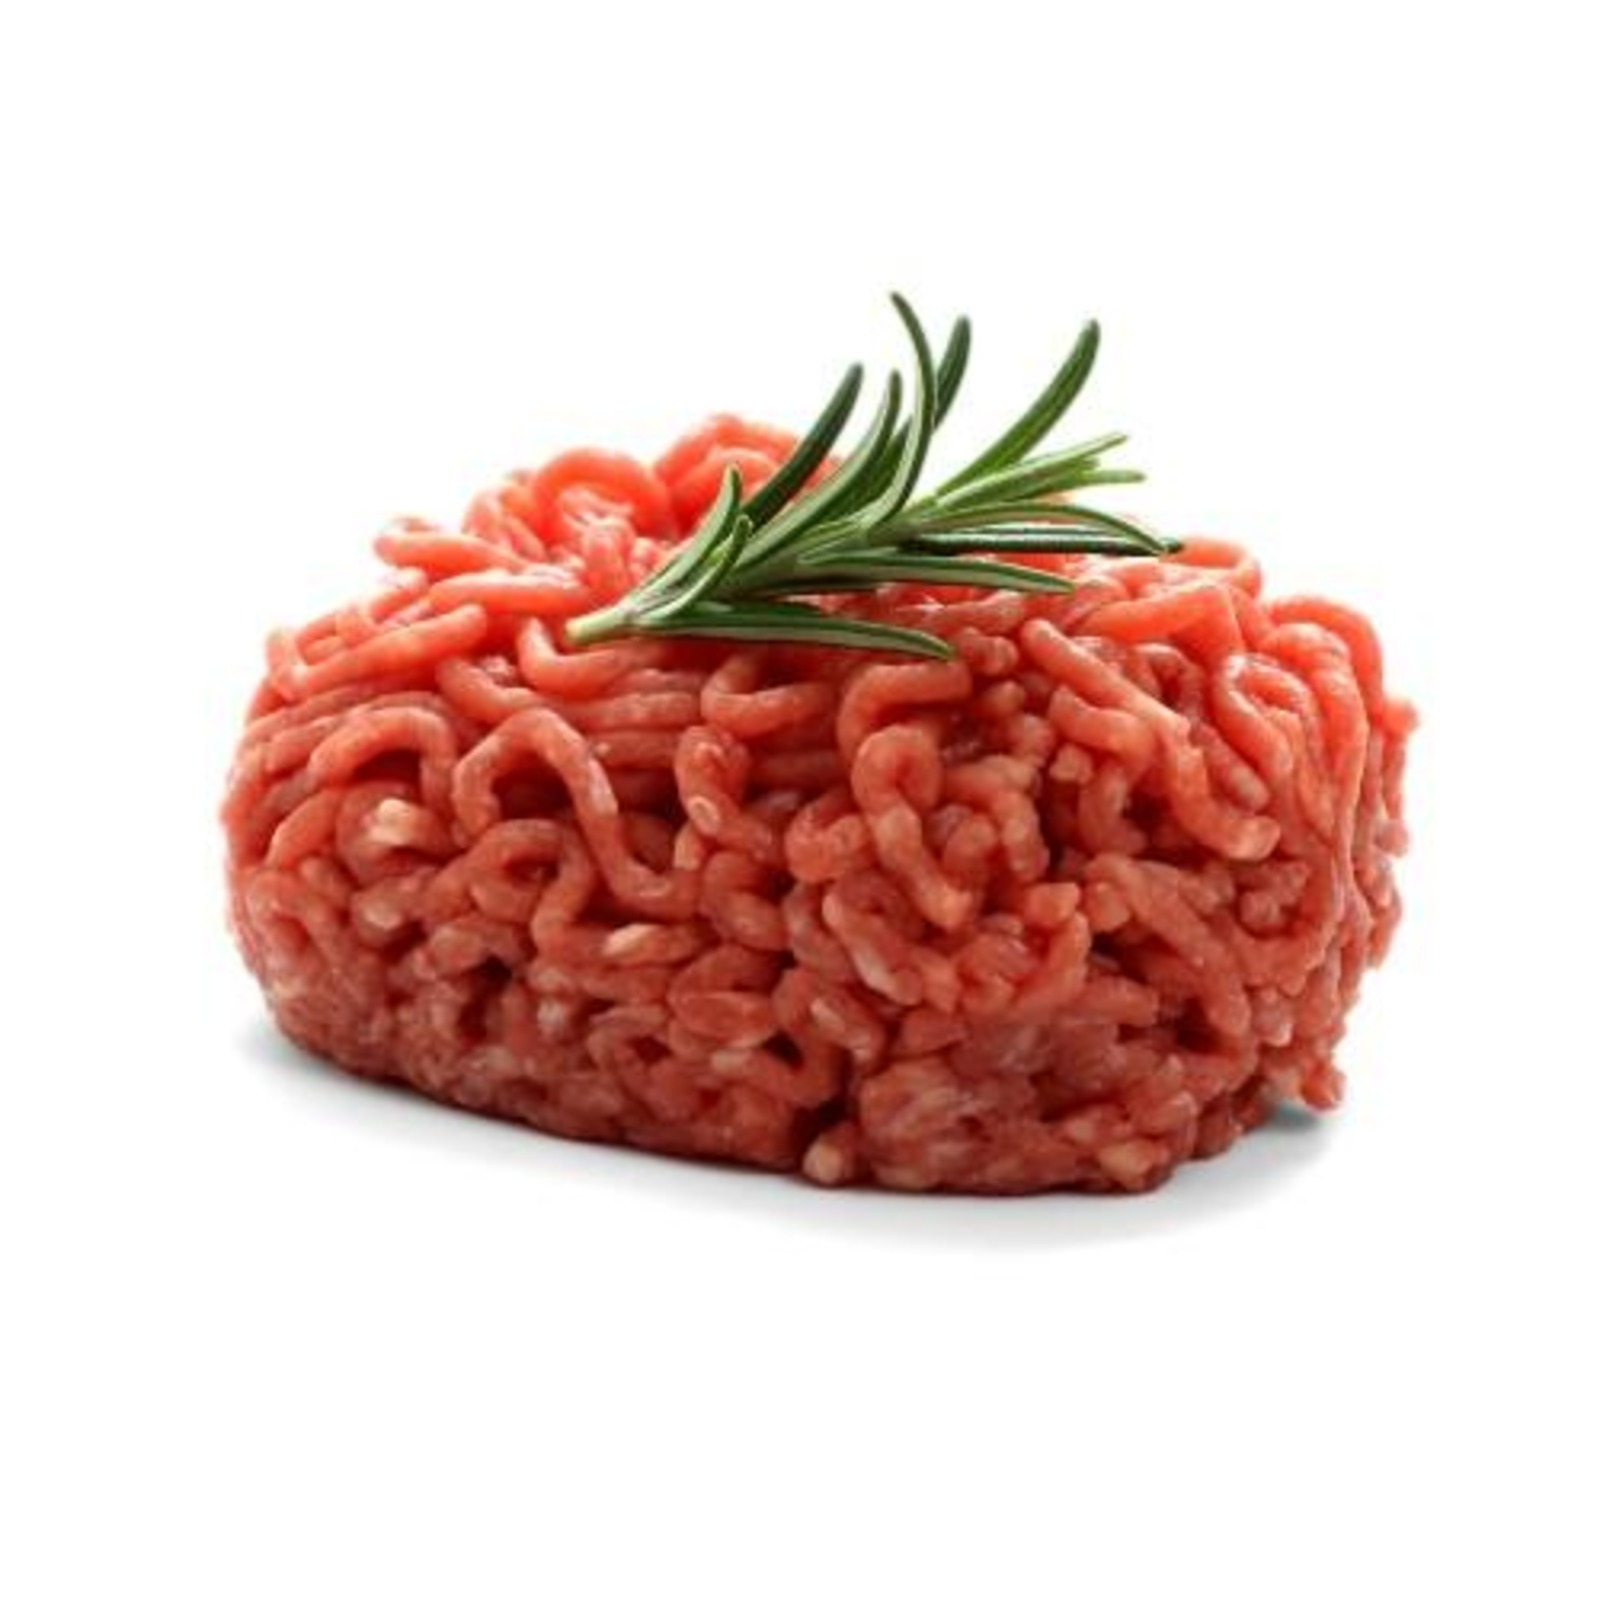 Aw's Market Beef Mince